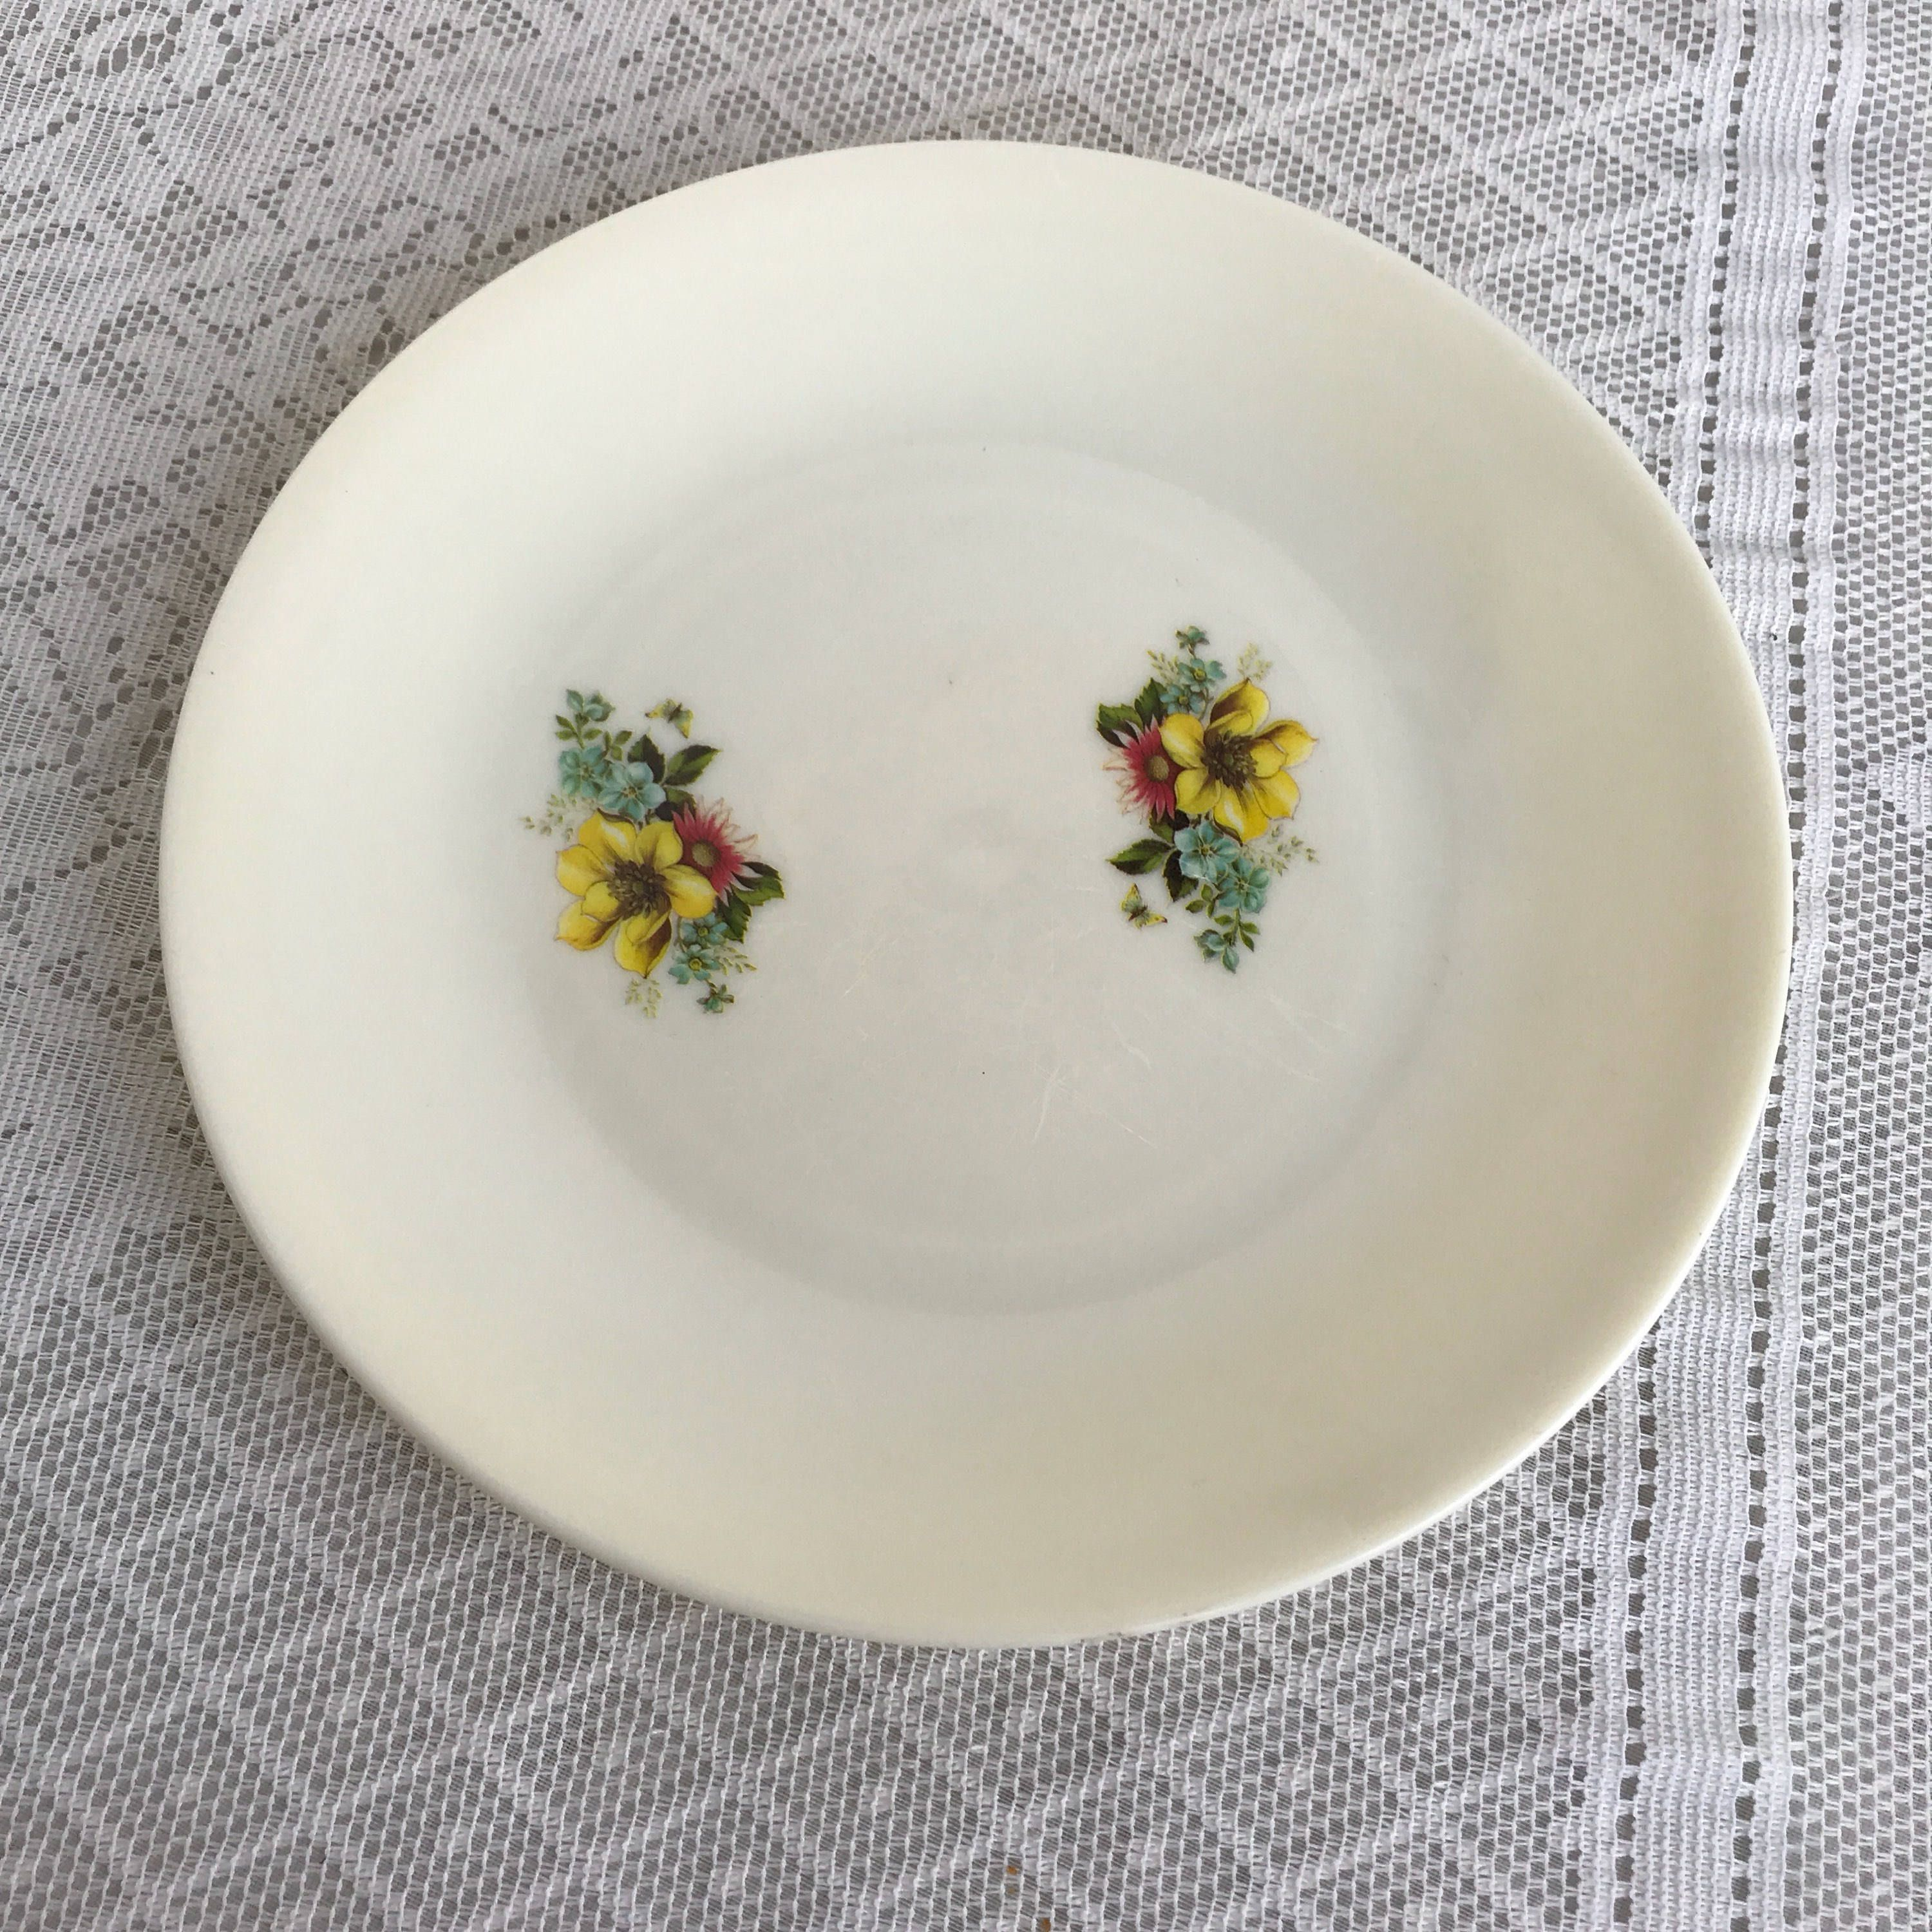 Vintage Melamine Floral Dinner Plate / White Plastic Plate with Flowers / Made in Hong Kong & Vintage Melamine Floral Dinner Plate / White Plastic Plate with ...